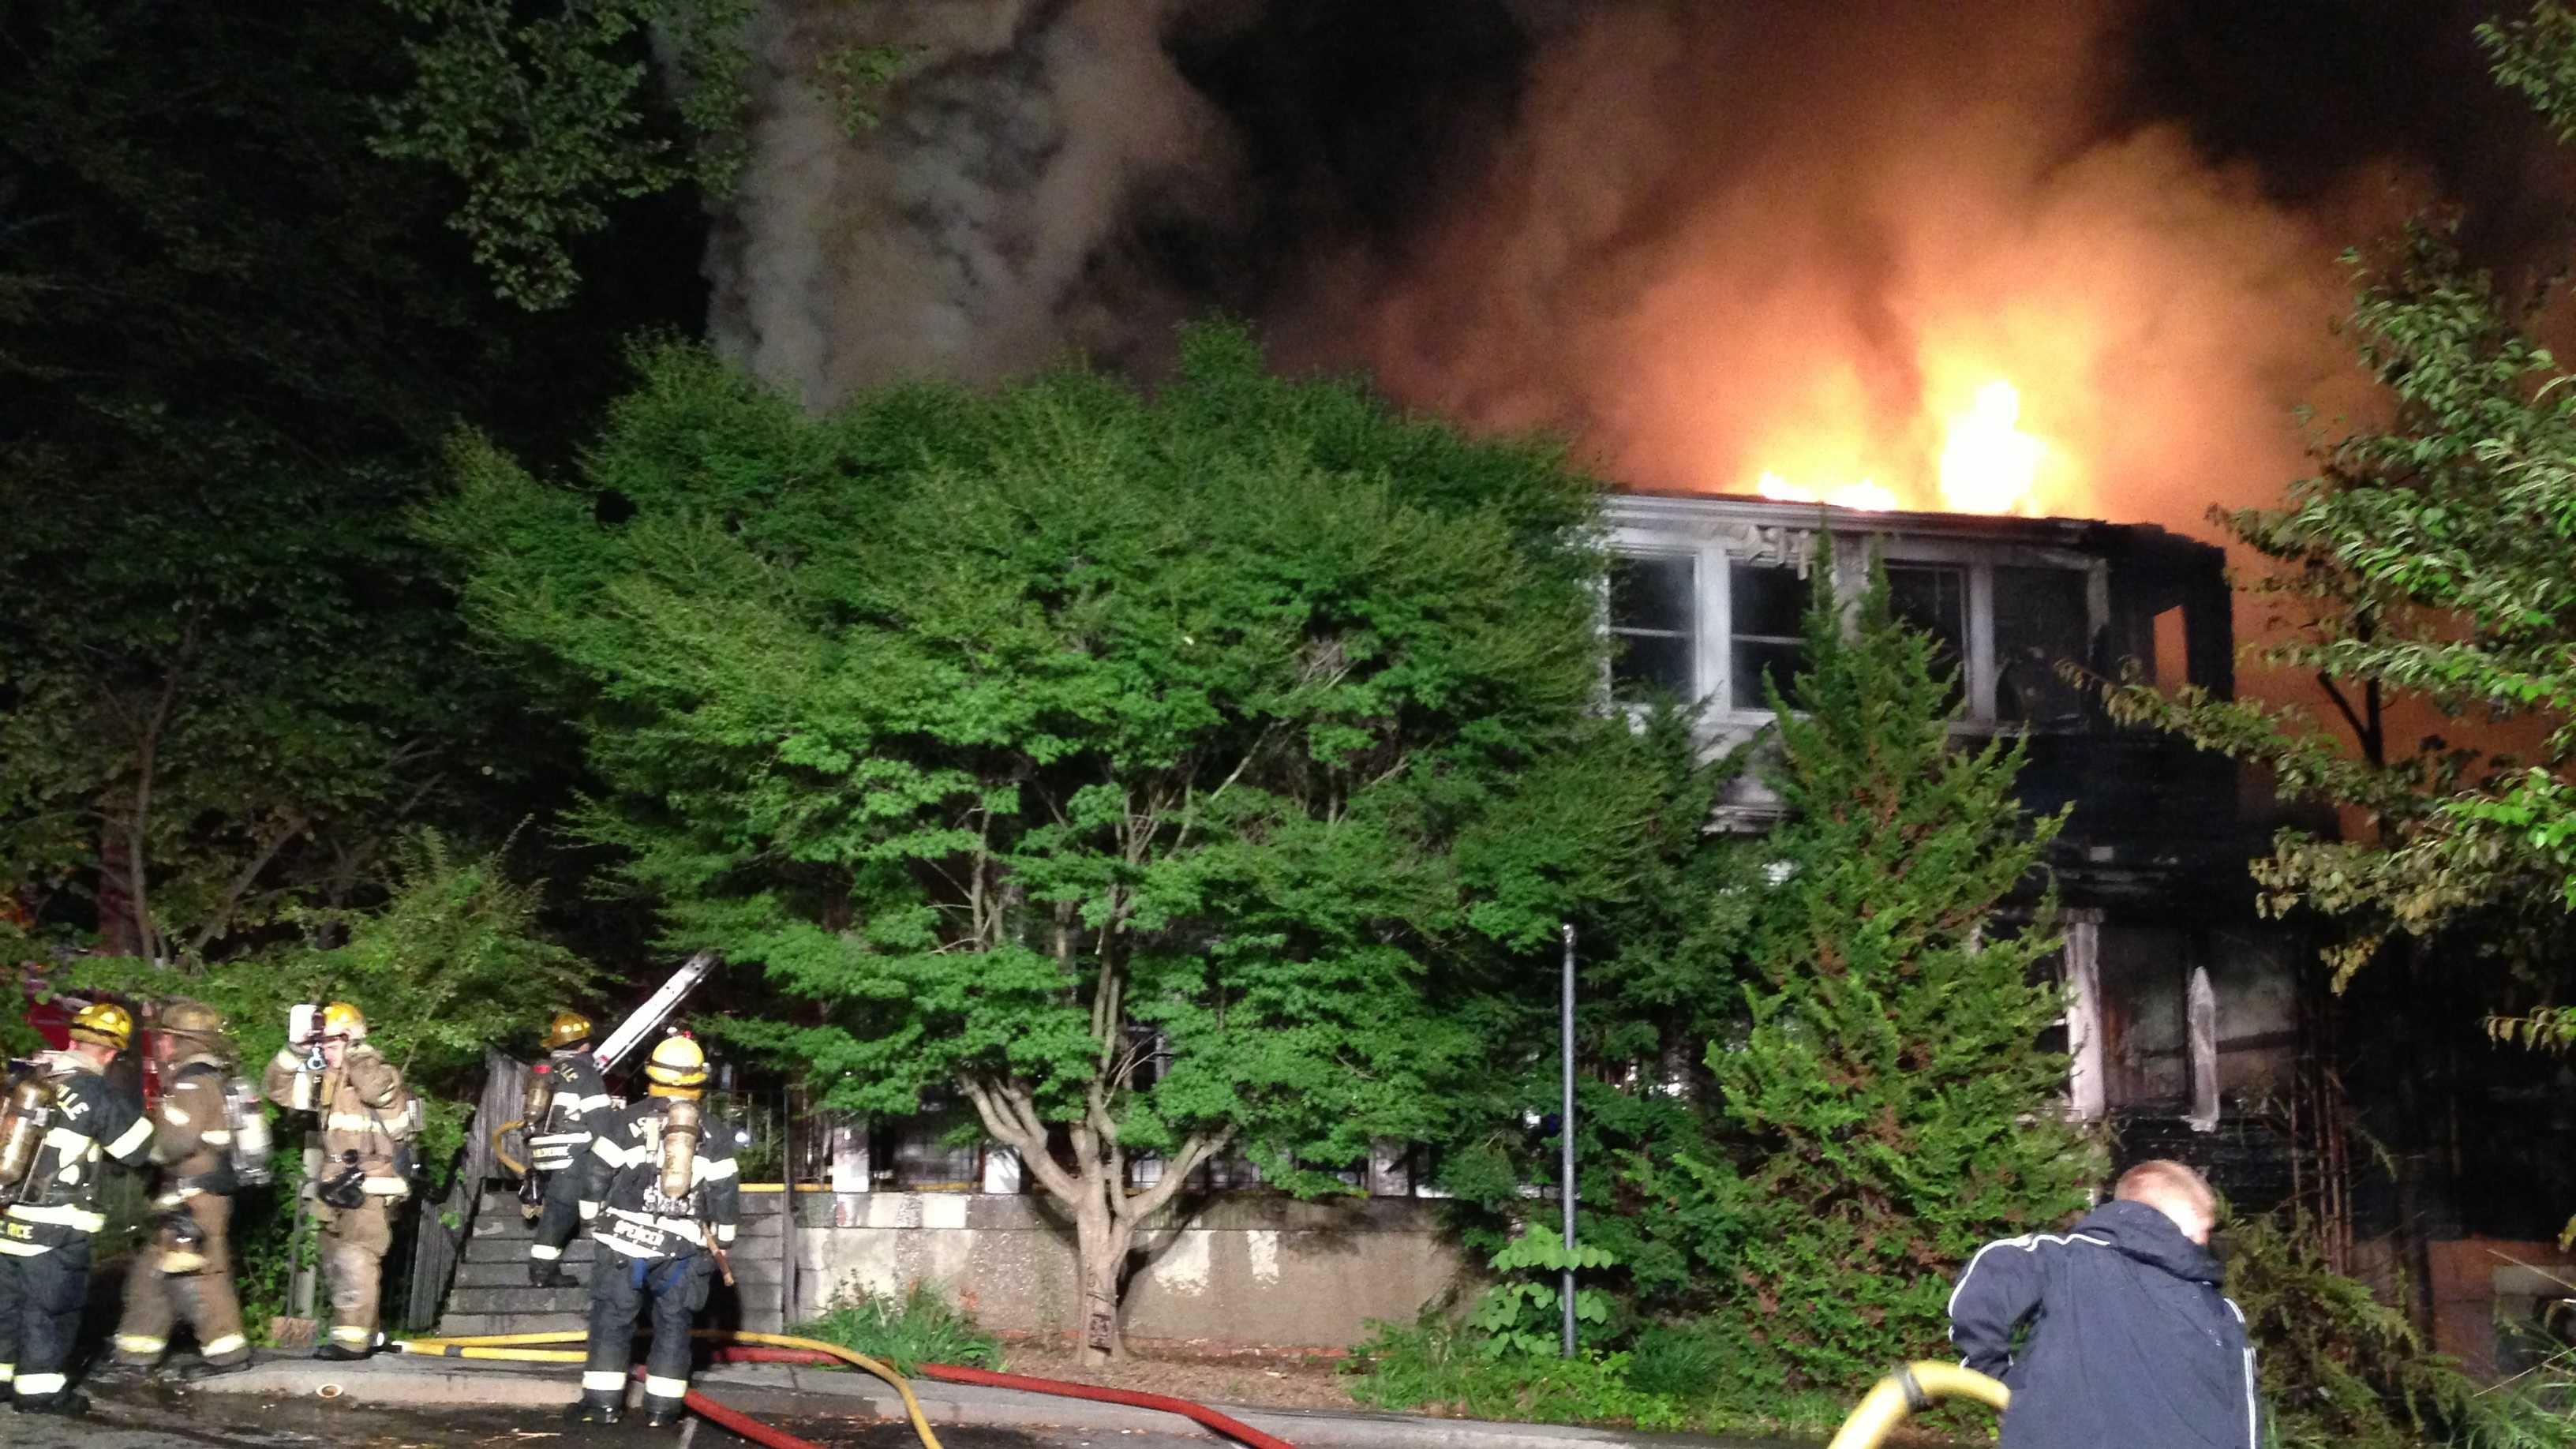 The fire was reported to 911 about 3:30 a.m. on Monday